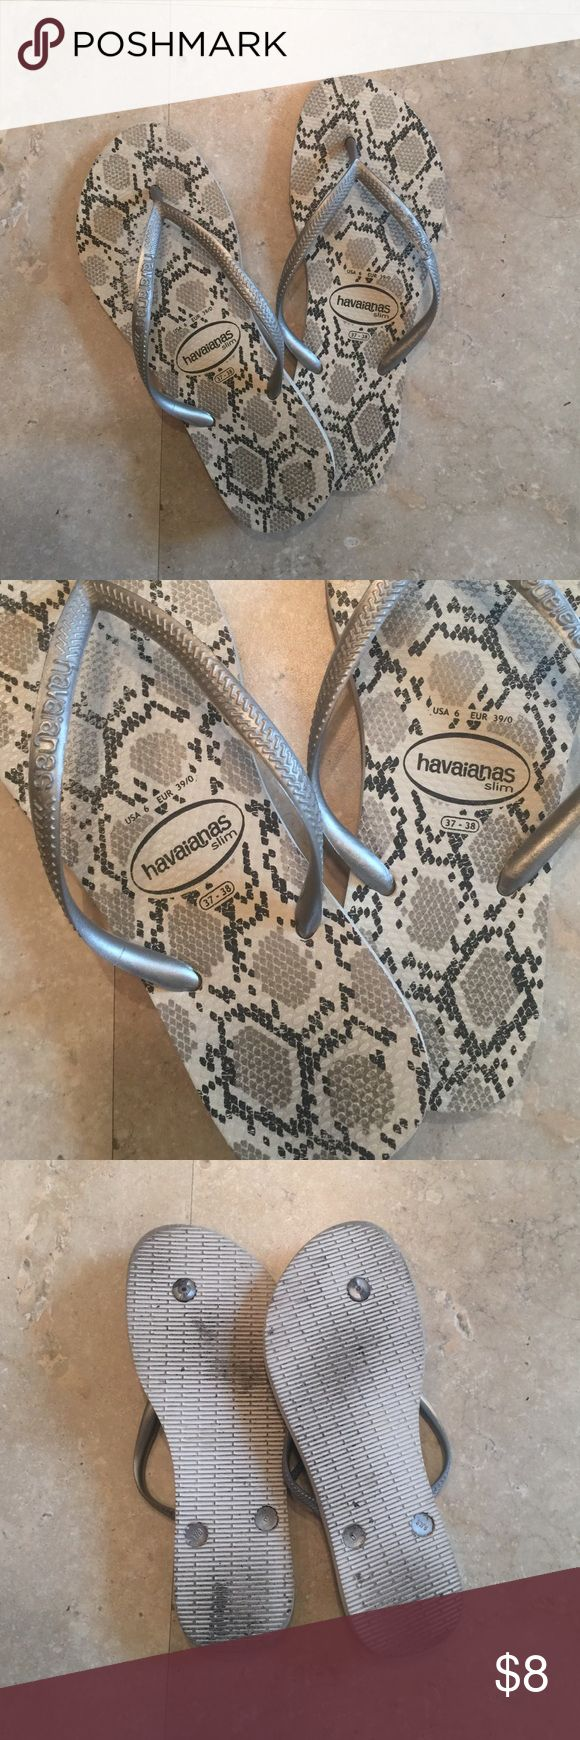 Havaianas Slim Flip Flops Snake print flip flops. Worn but still in totally usable condition. Size 37-38 Brazilian. 39/40 Eur. Havaianas Shoes Sandals